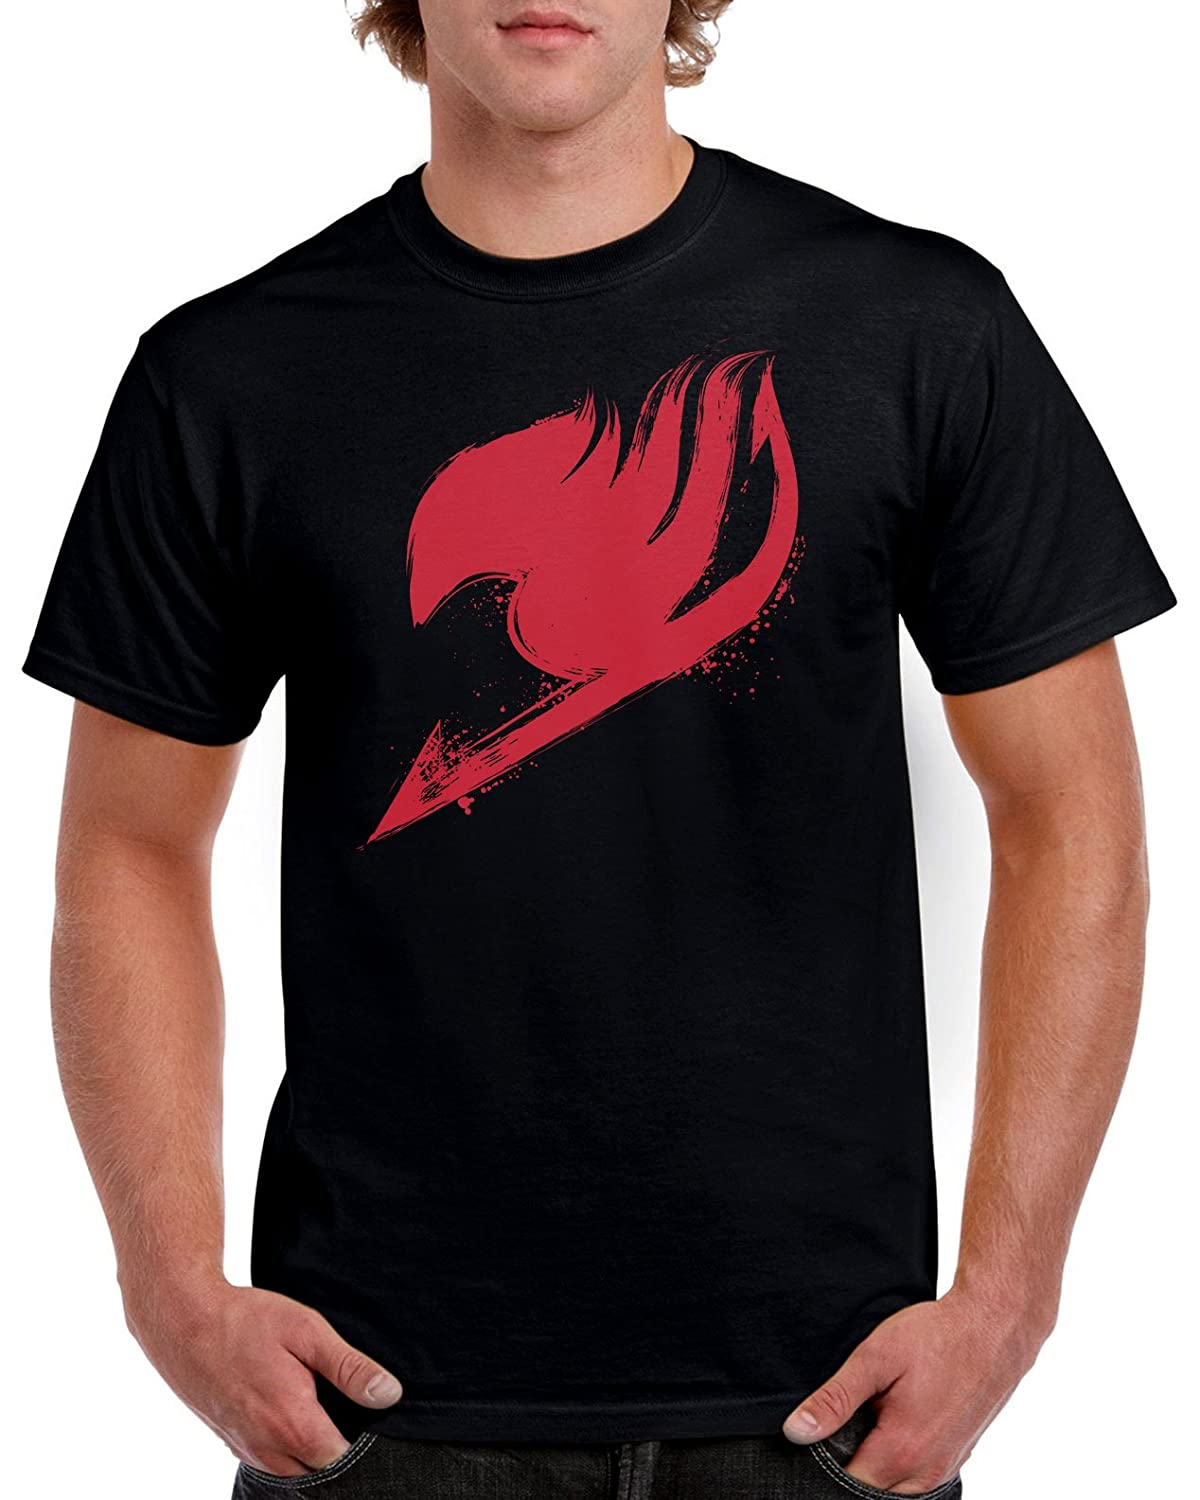 3431-Camiseta Premium, Fairy tail - The guild (Dr.Monekers)